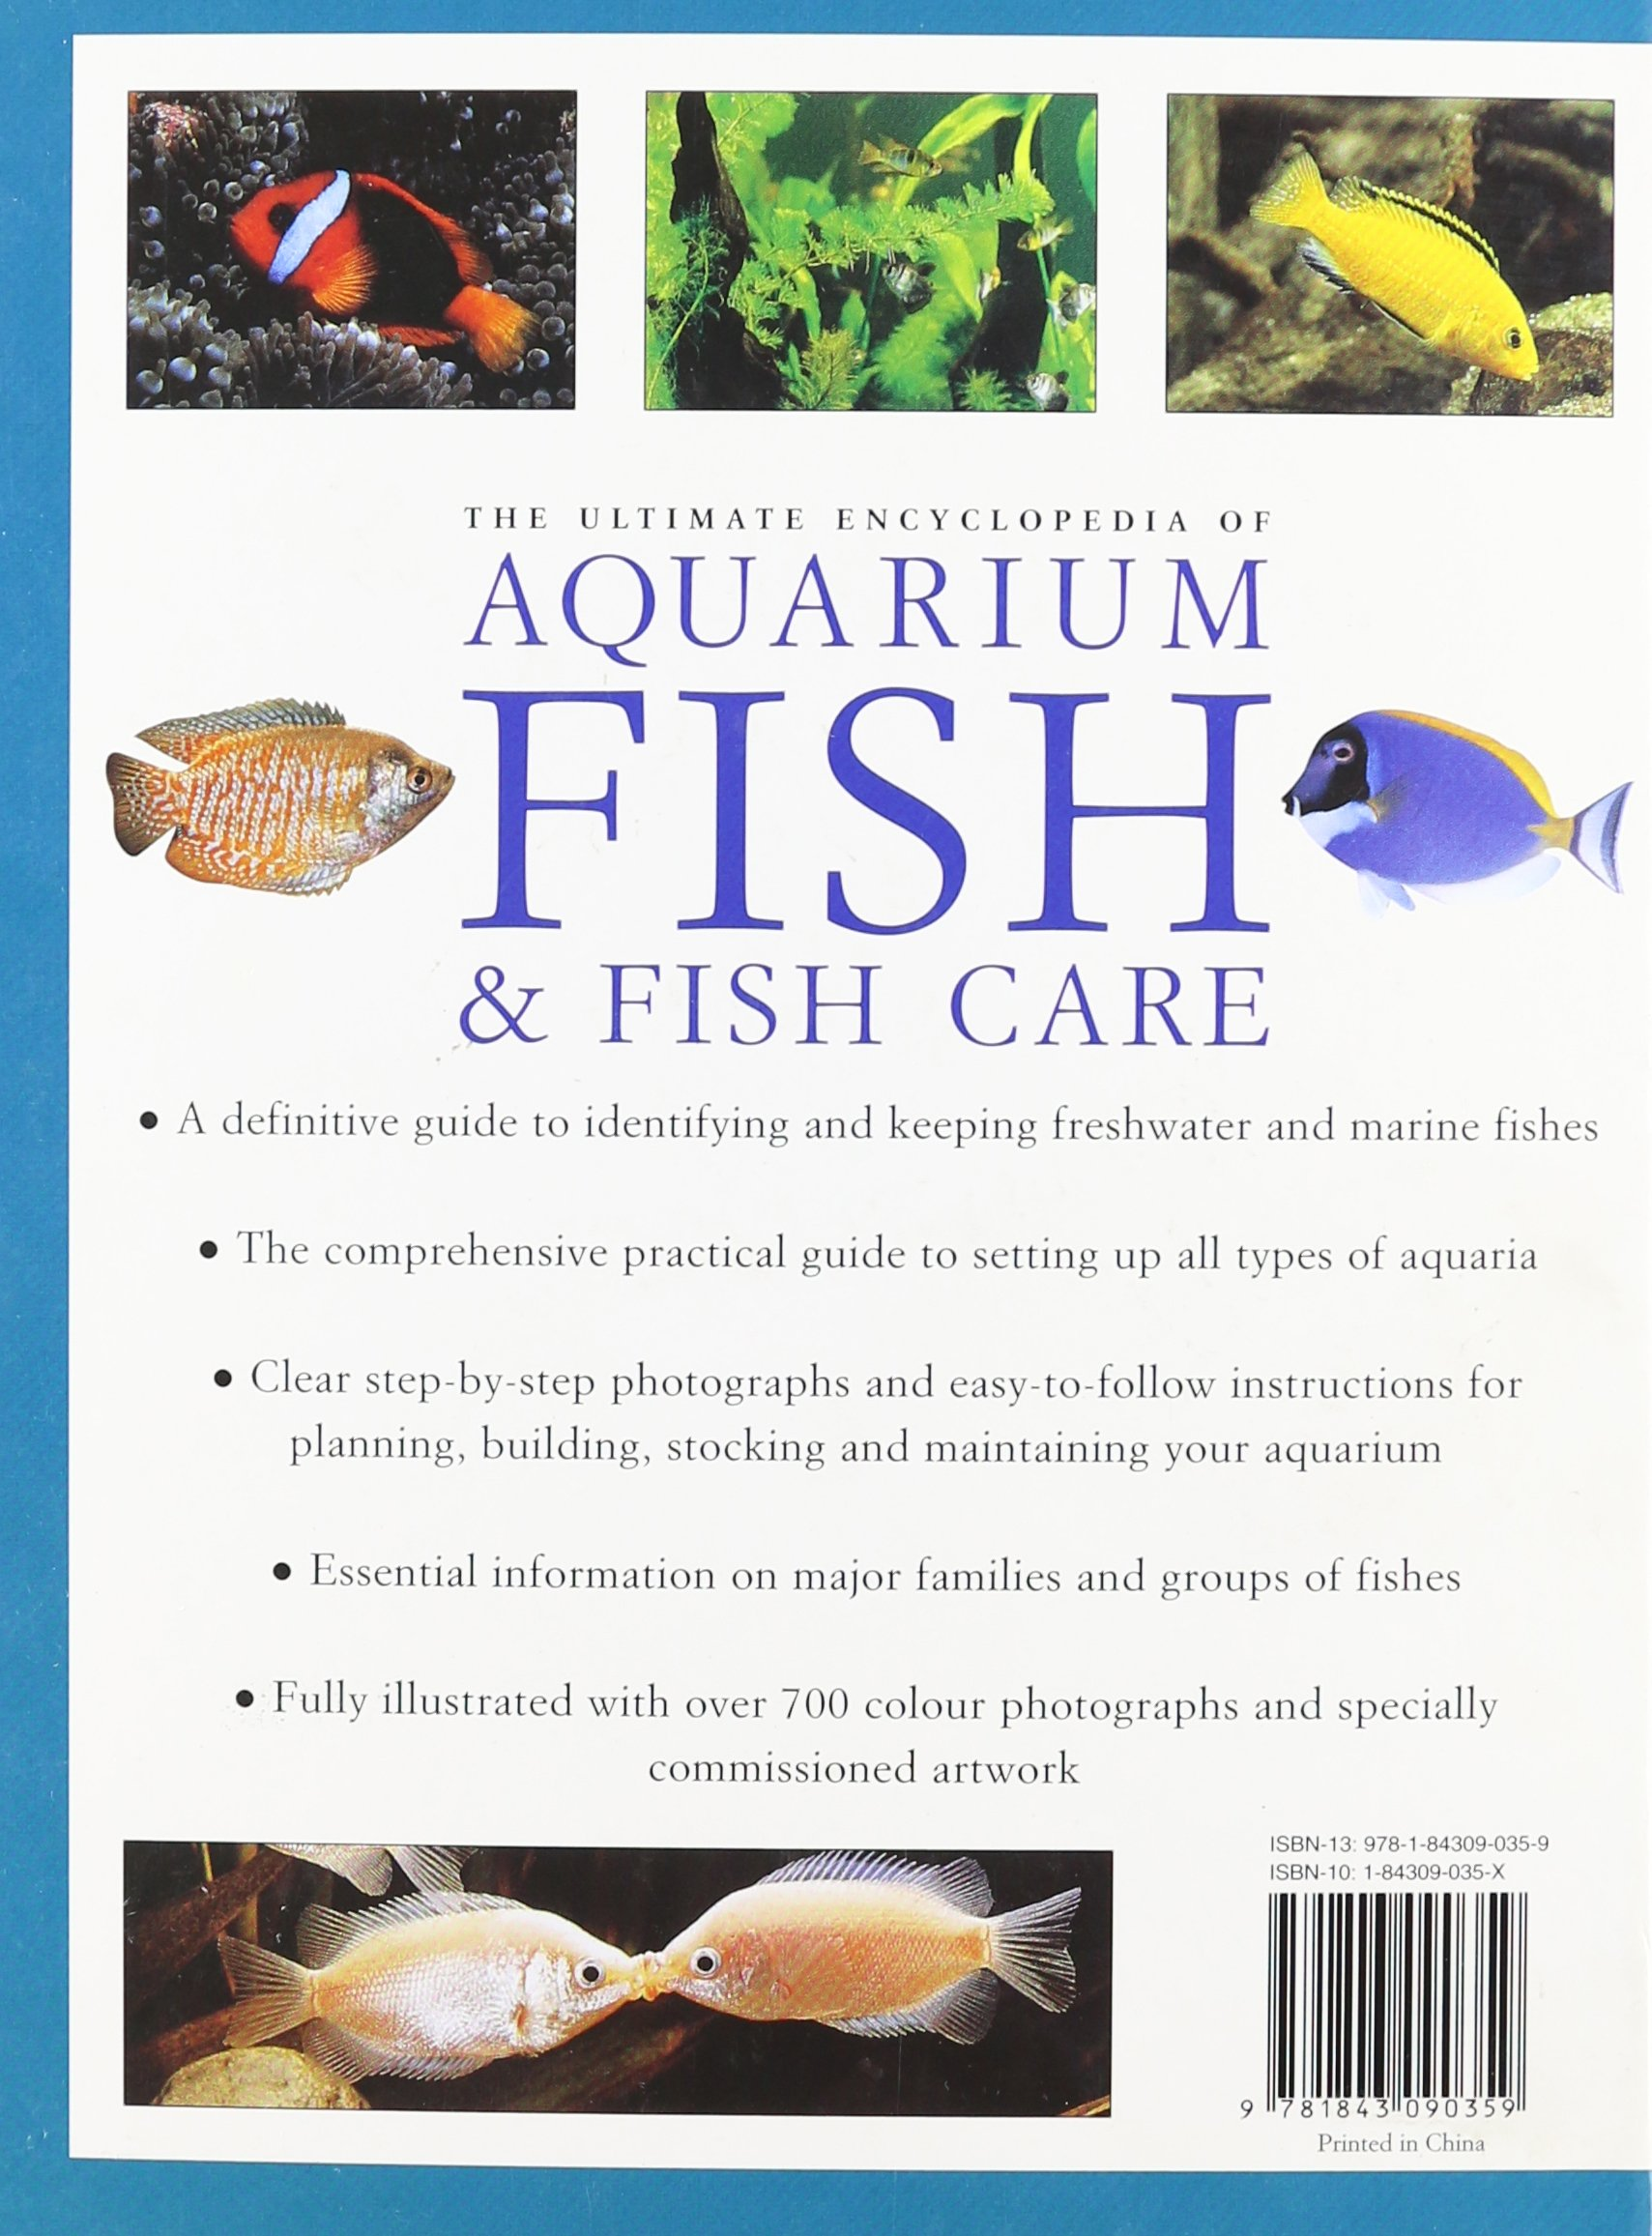 Freshwater aquarium fish guide - The Ultimate Aquarium A Definitive Guide To Identifying And Keeping Freshwater And Marine Fishes Amazon Com Books